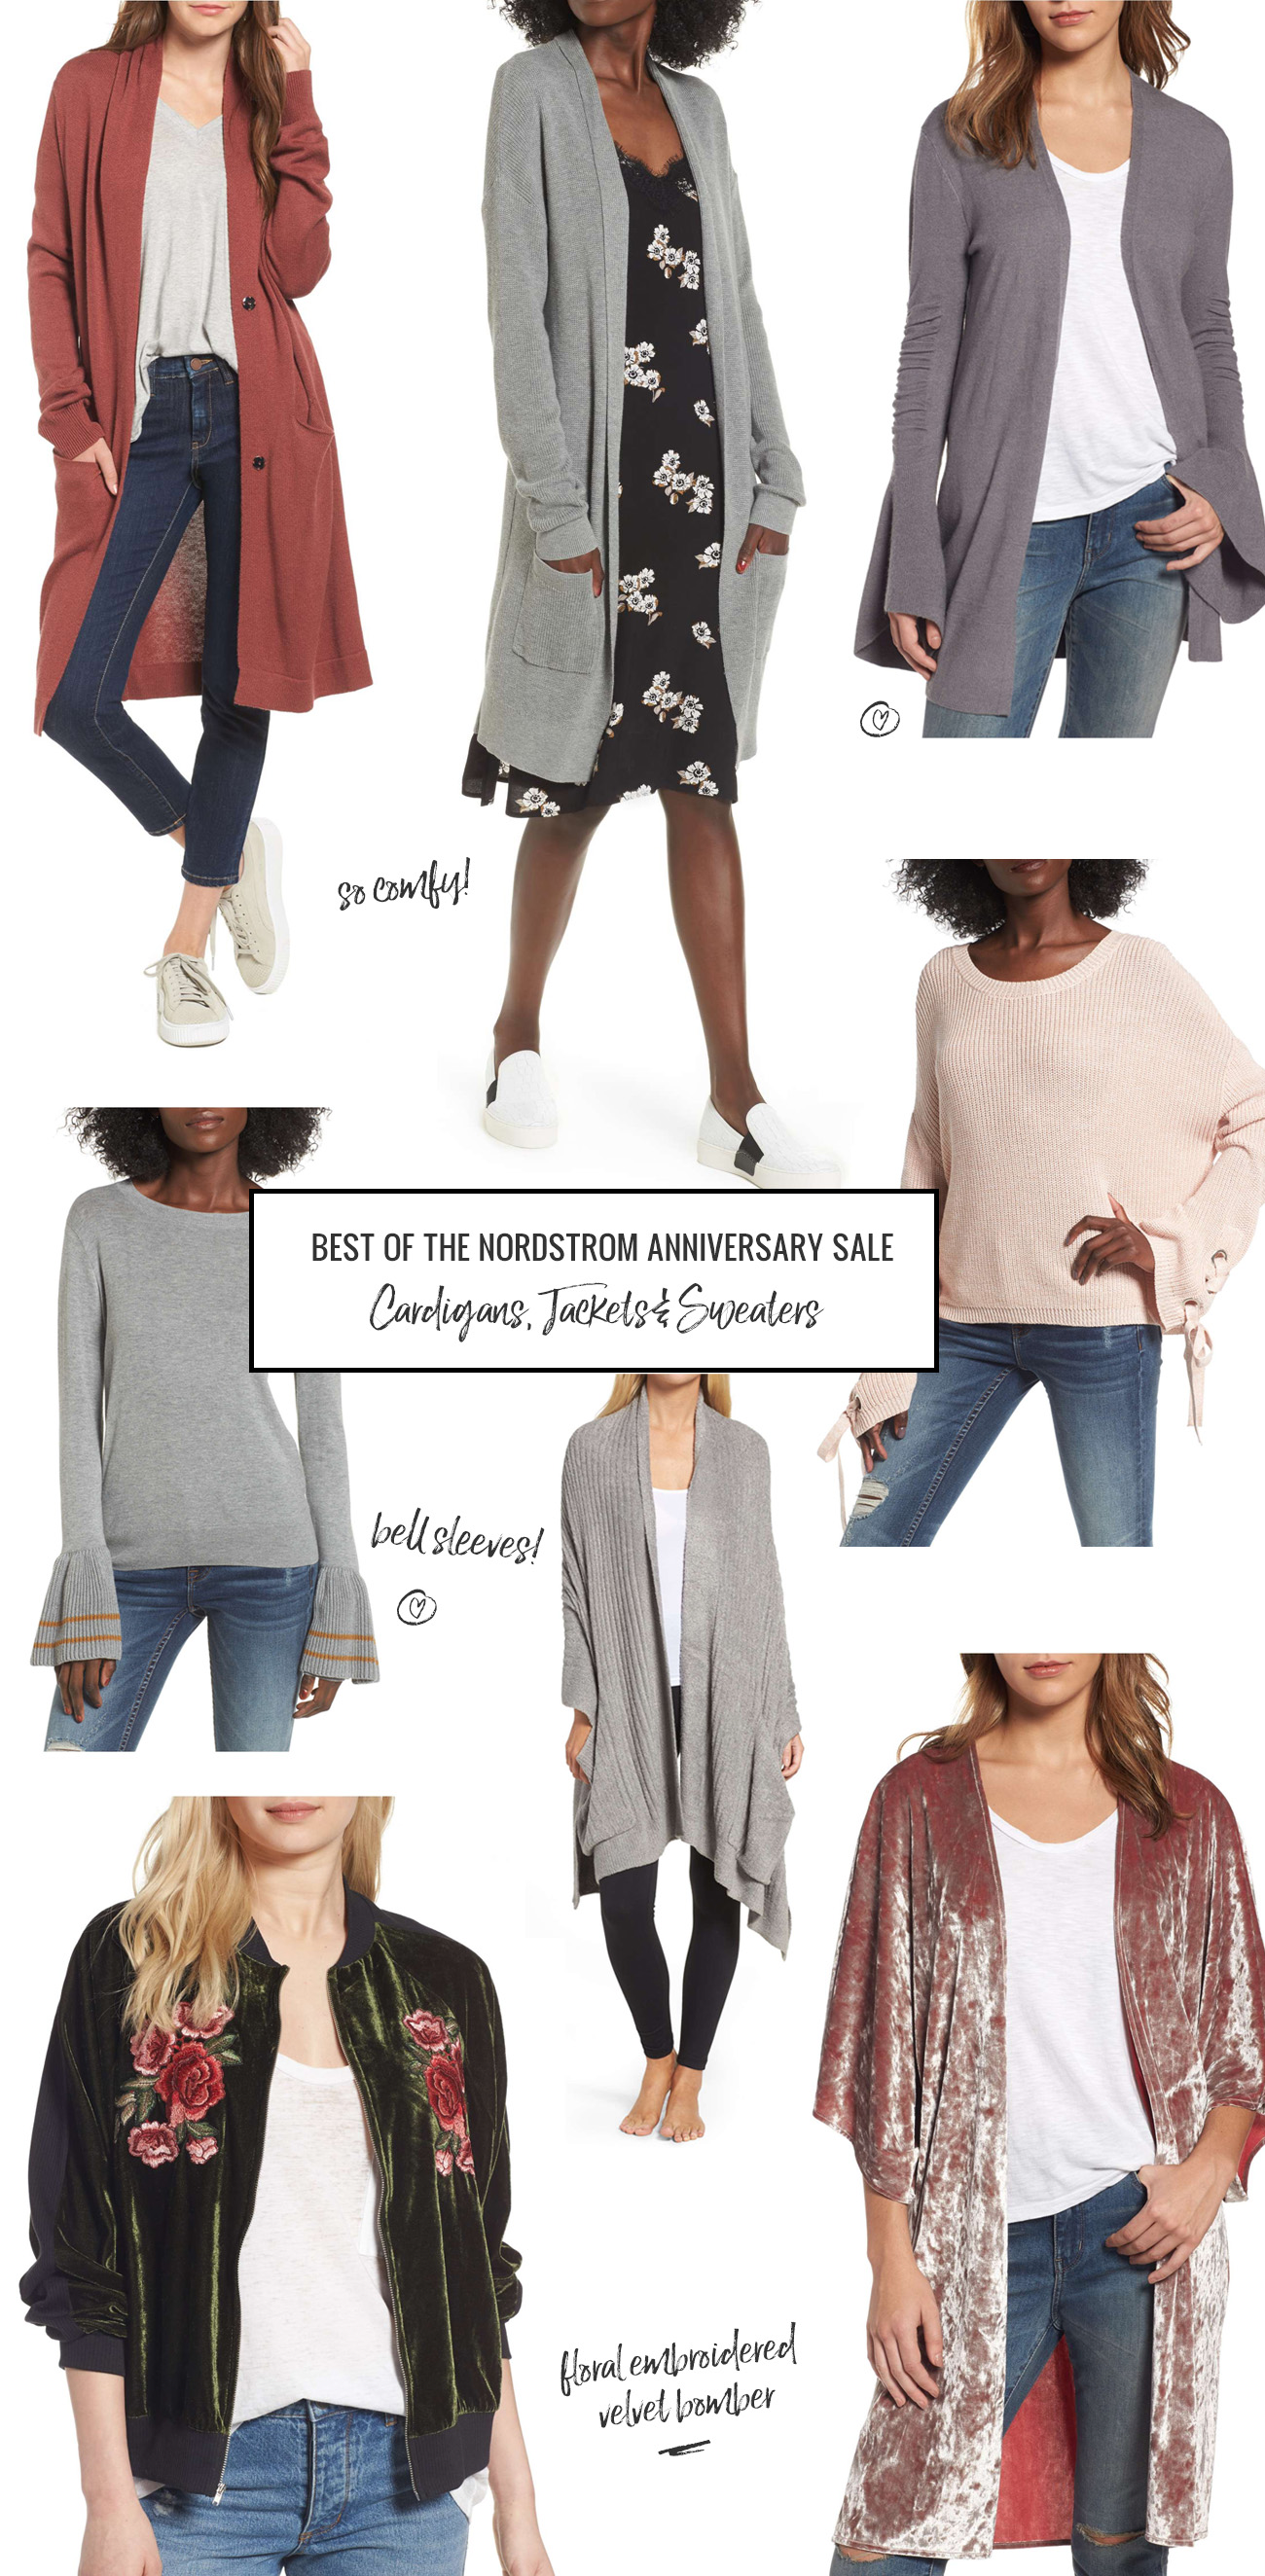 nordstrom sale jackets and cardigans